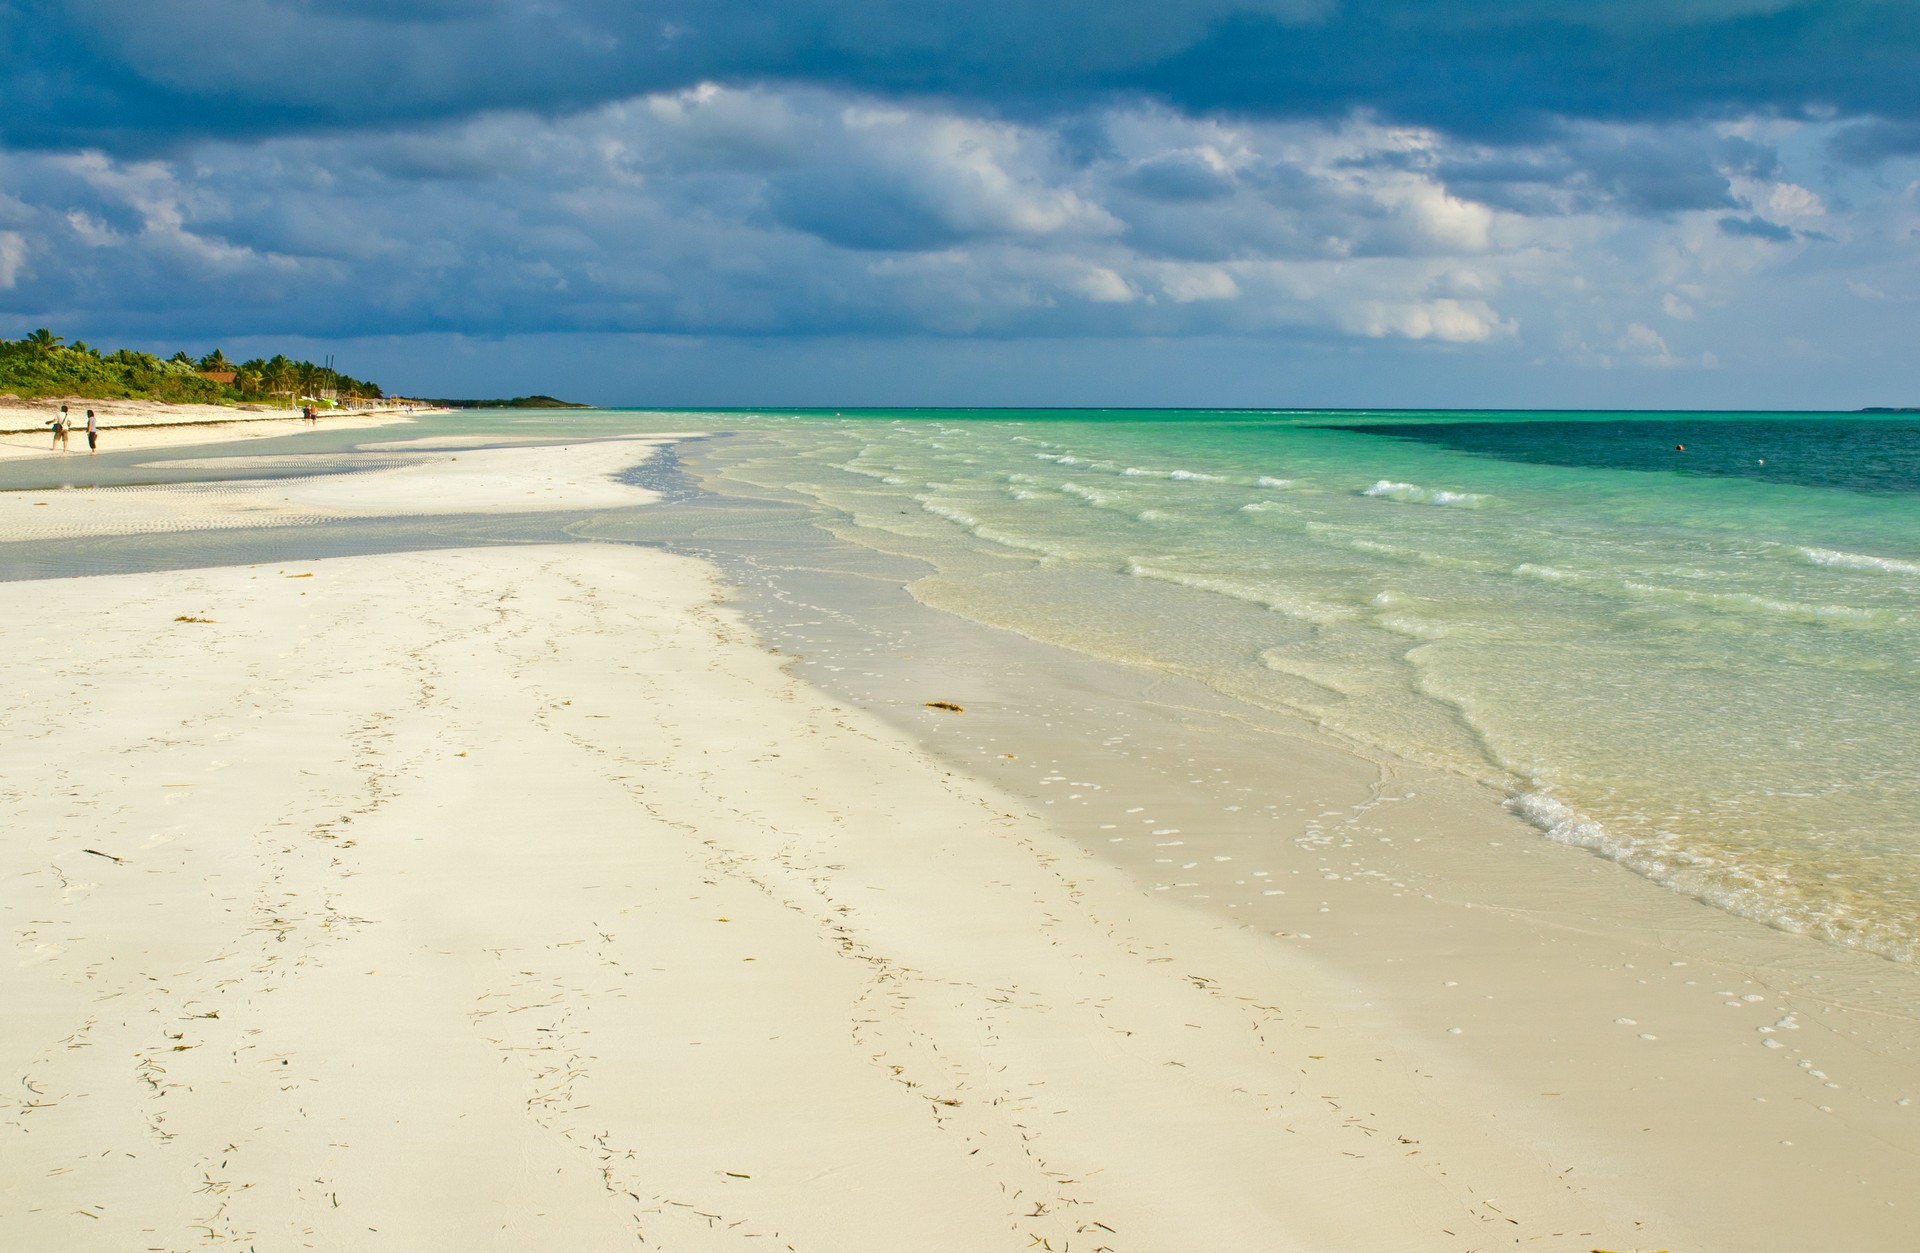 Beach on Cayo Guillermo, Cuba